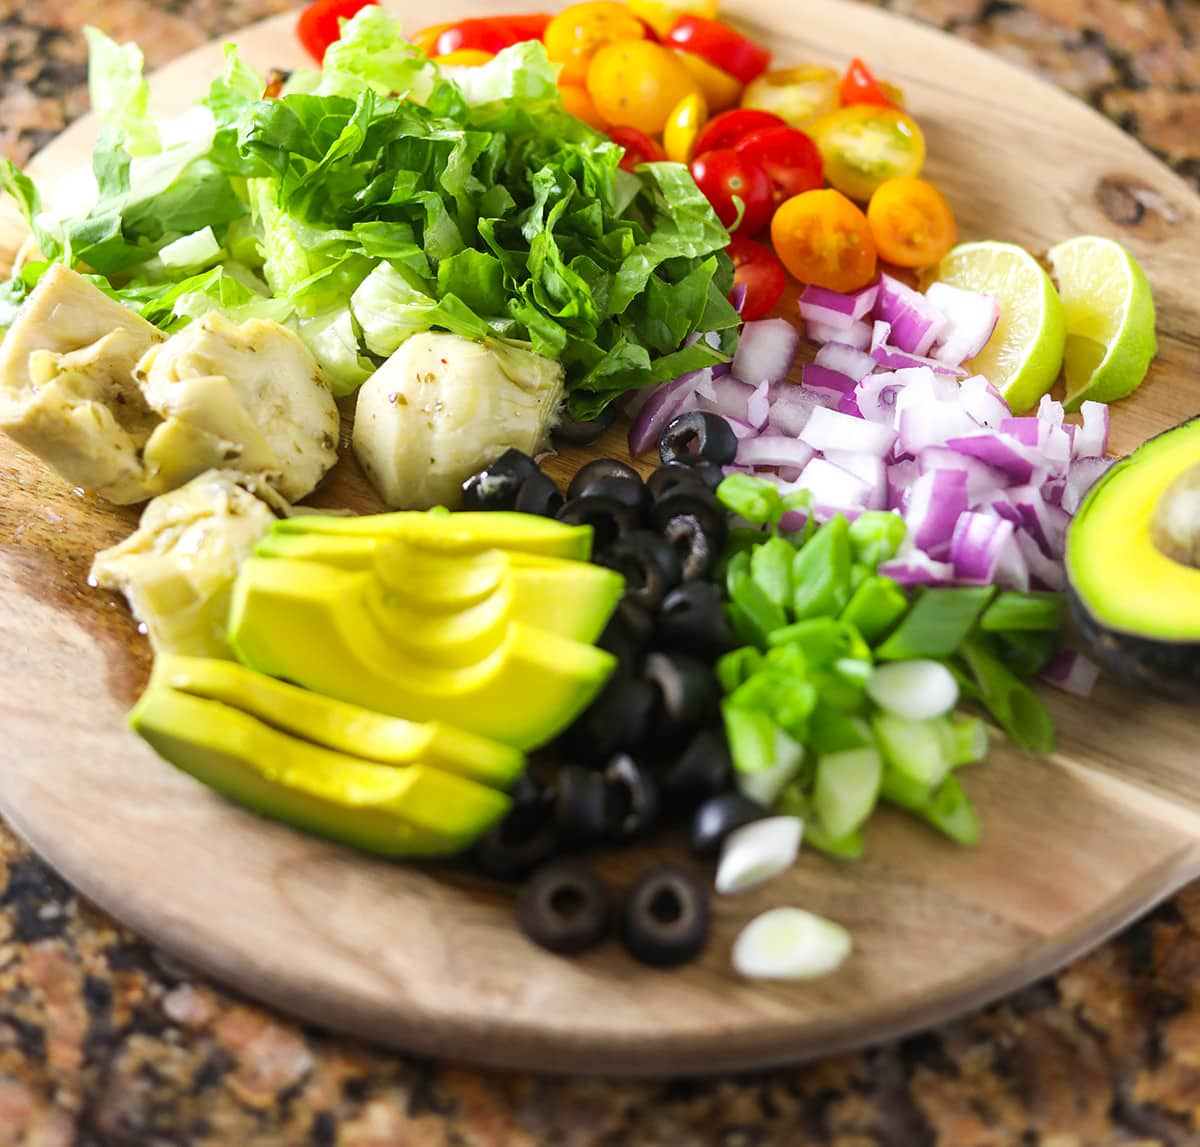 Prepped Cajun tofu salad ingredients on a round wooden cutting board, avocado slices, olives, tomato, lettuce, onion, lime slices